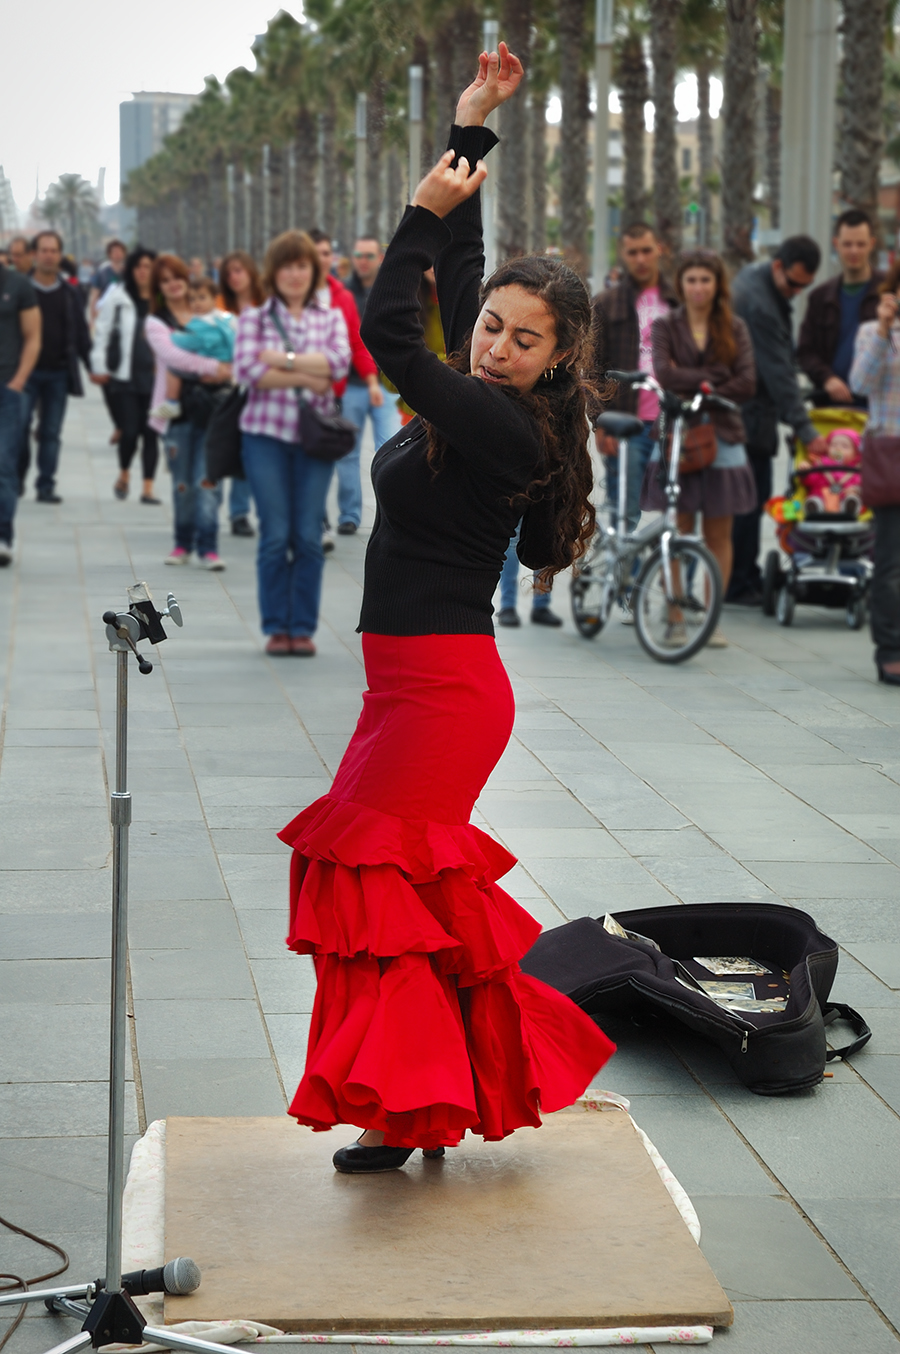 Bailora de Flamenco - Flamenco dancer at La Barceloneta